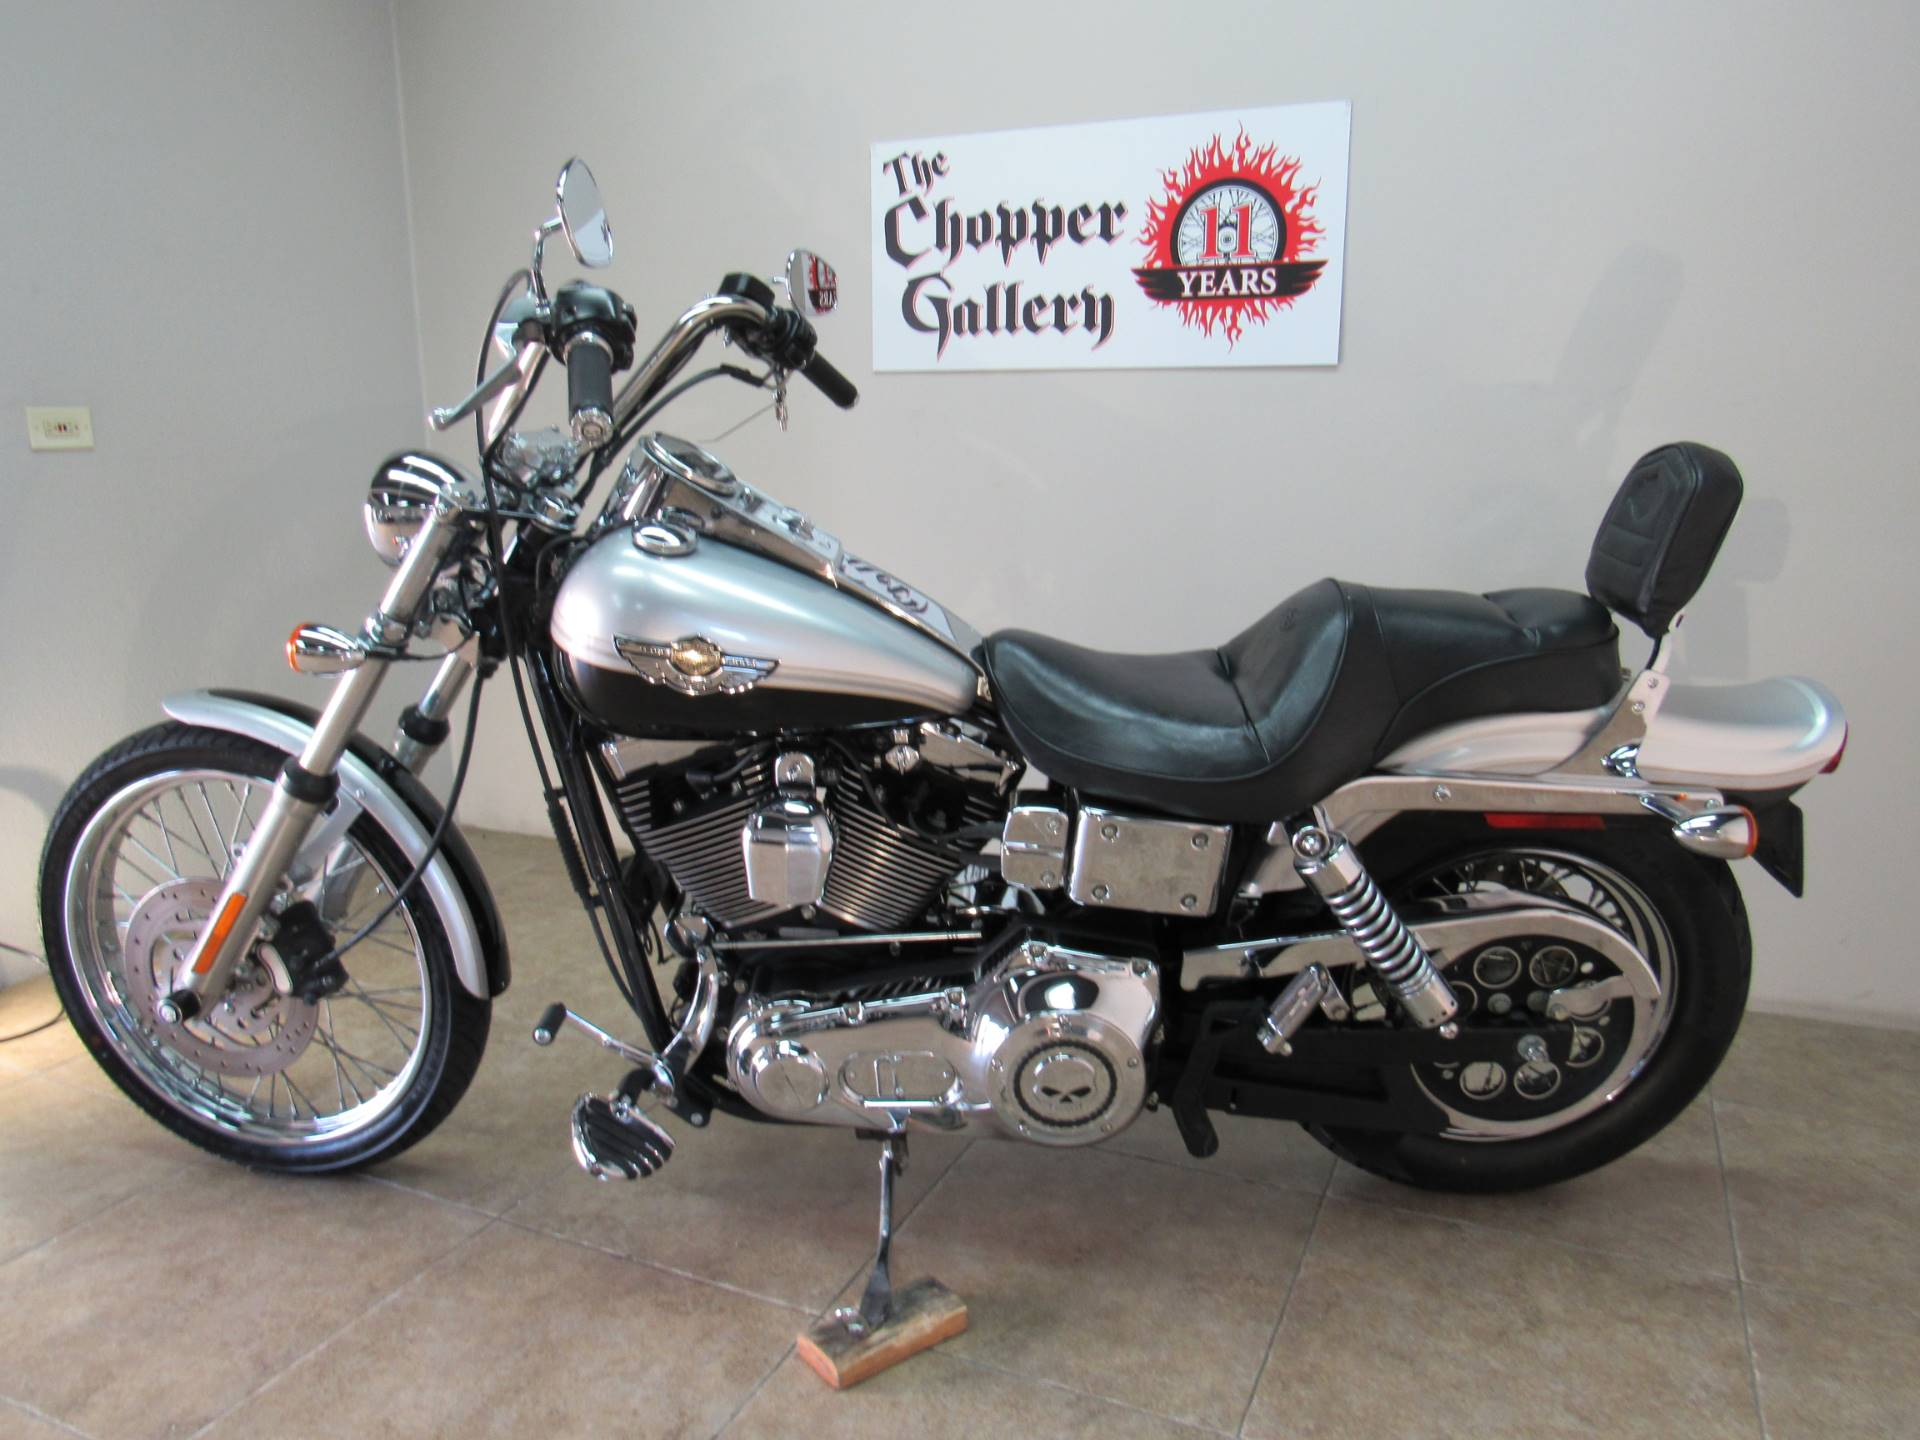 2003 Harley-Davidson FXDWG Dyna Wide Glide® in Temecula, California - Photo 2